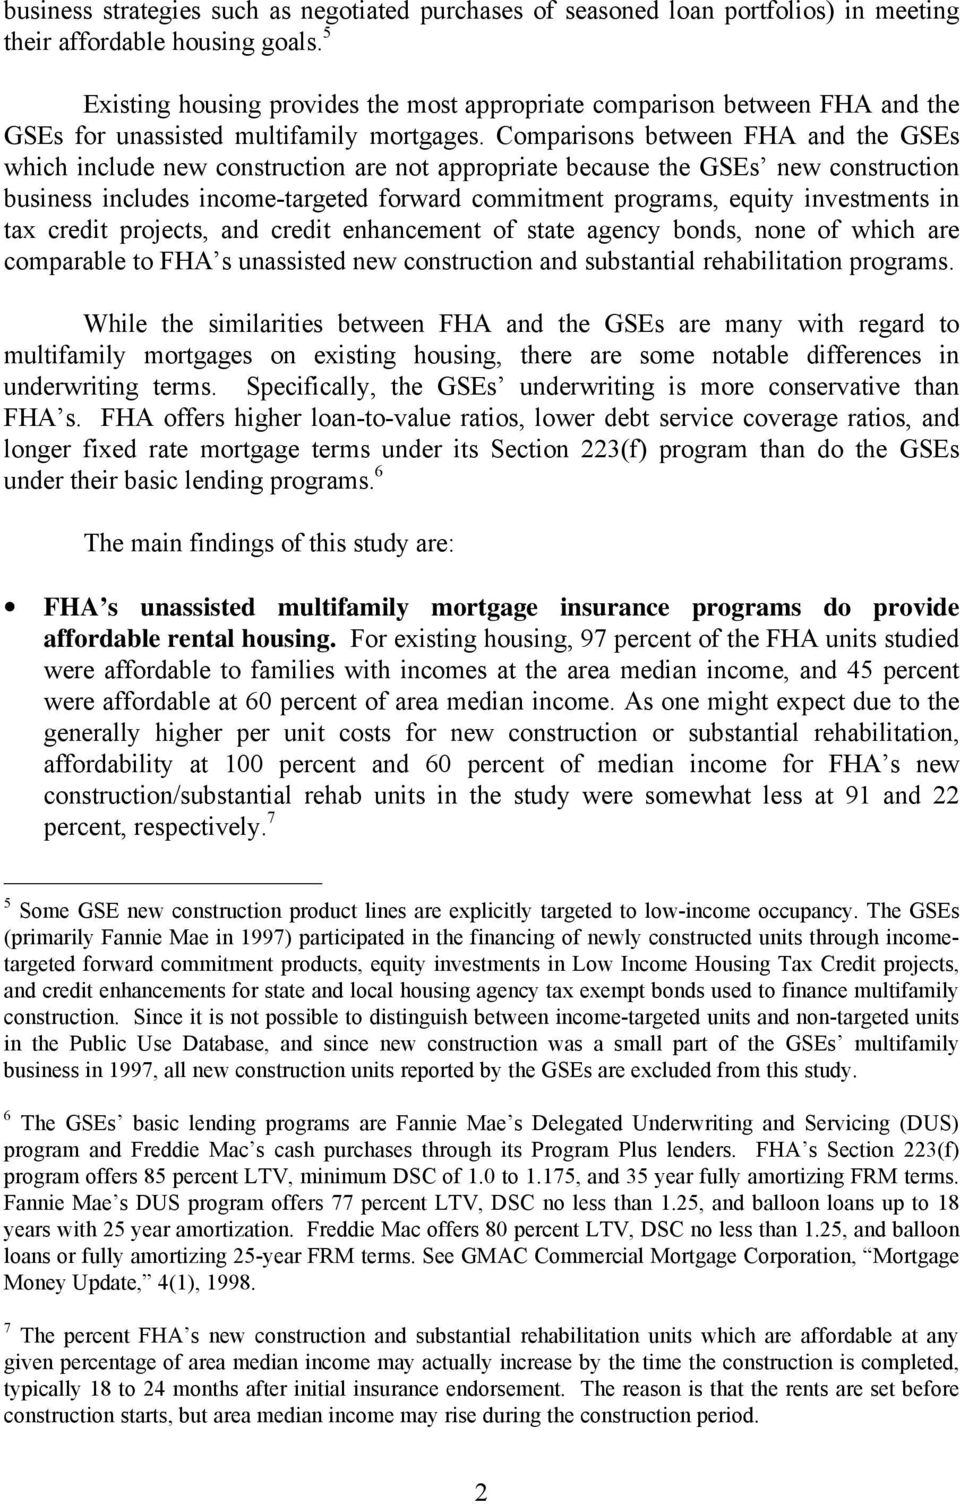 Comparisons between FHA and the GSEs which include new construction are not appropriate because the GSEs new construction business includes income-targeted forward commitment programs, equity